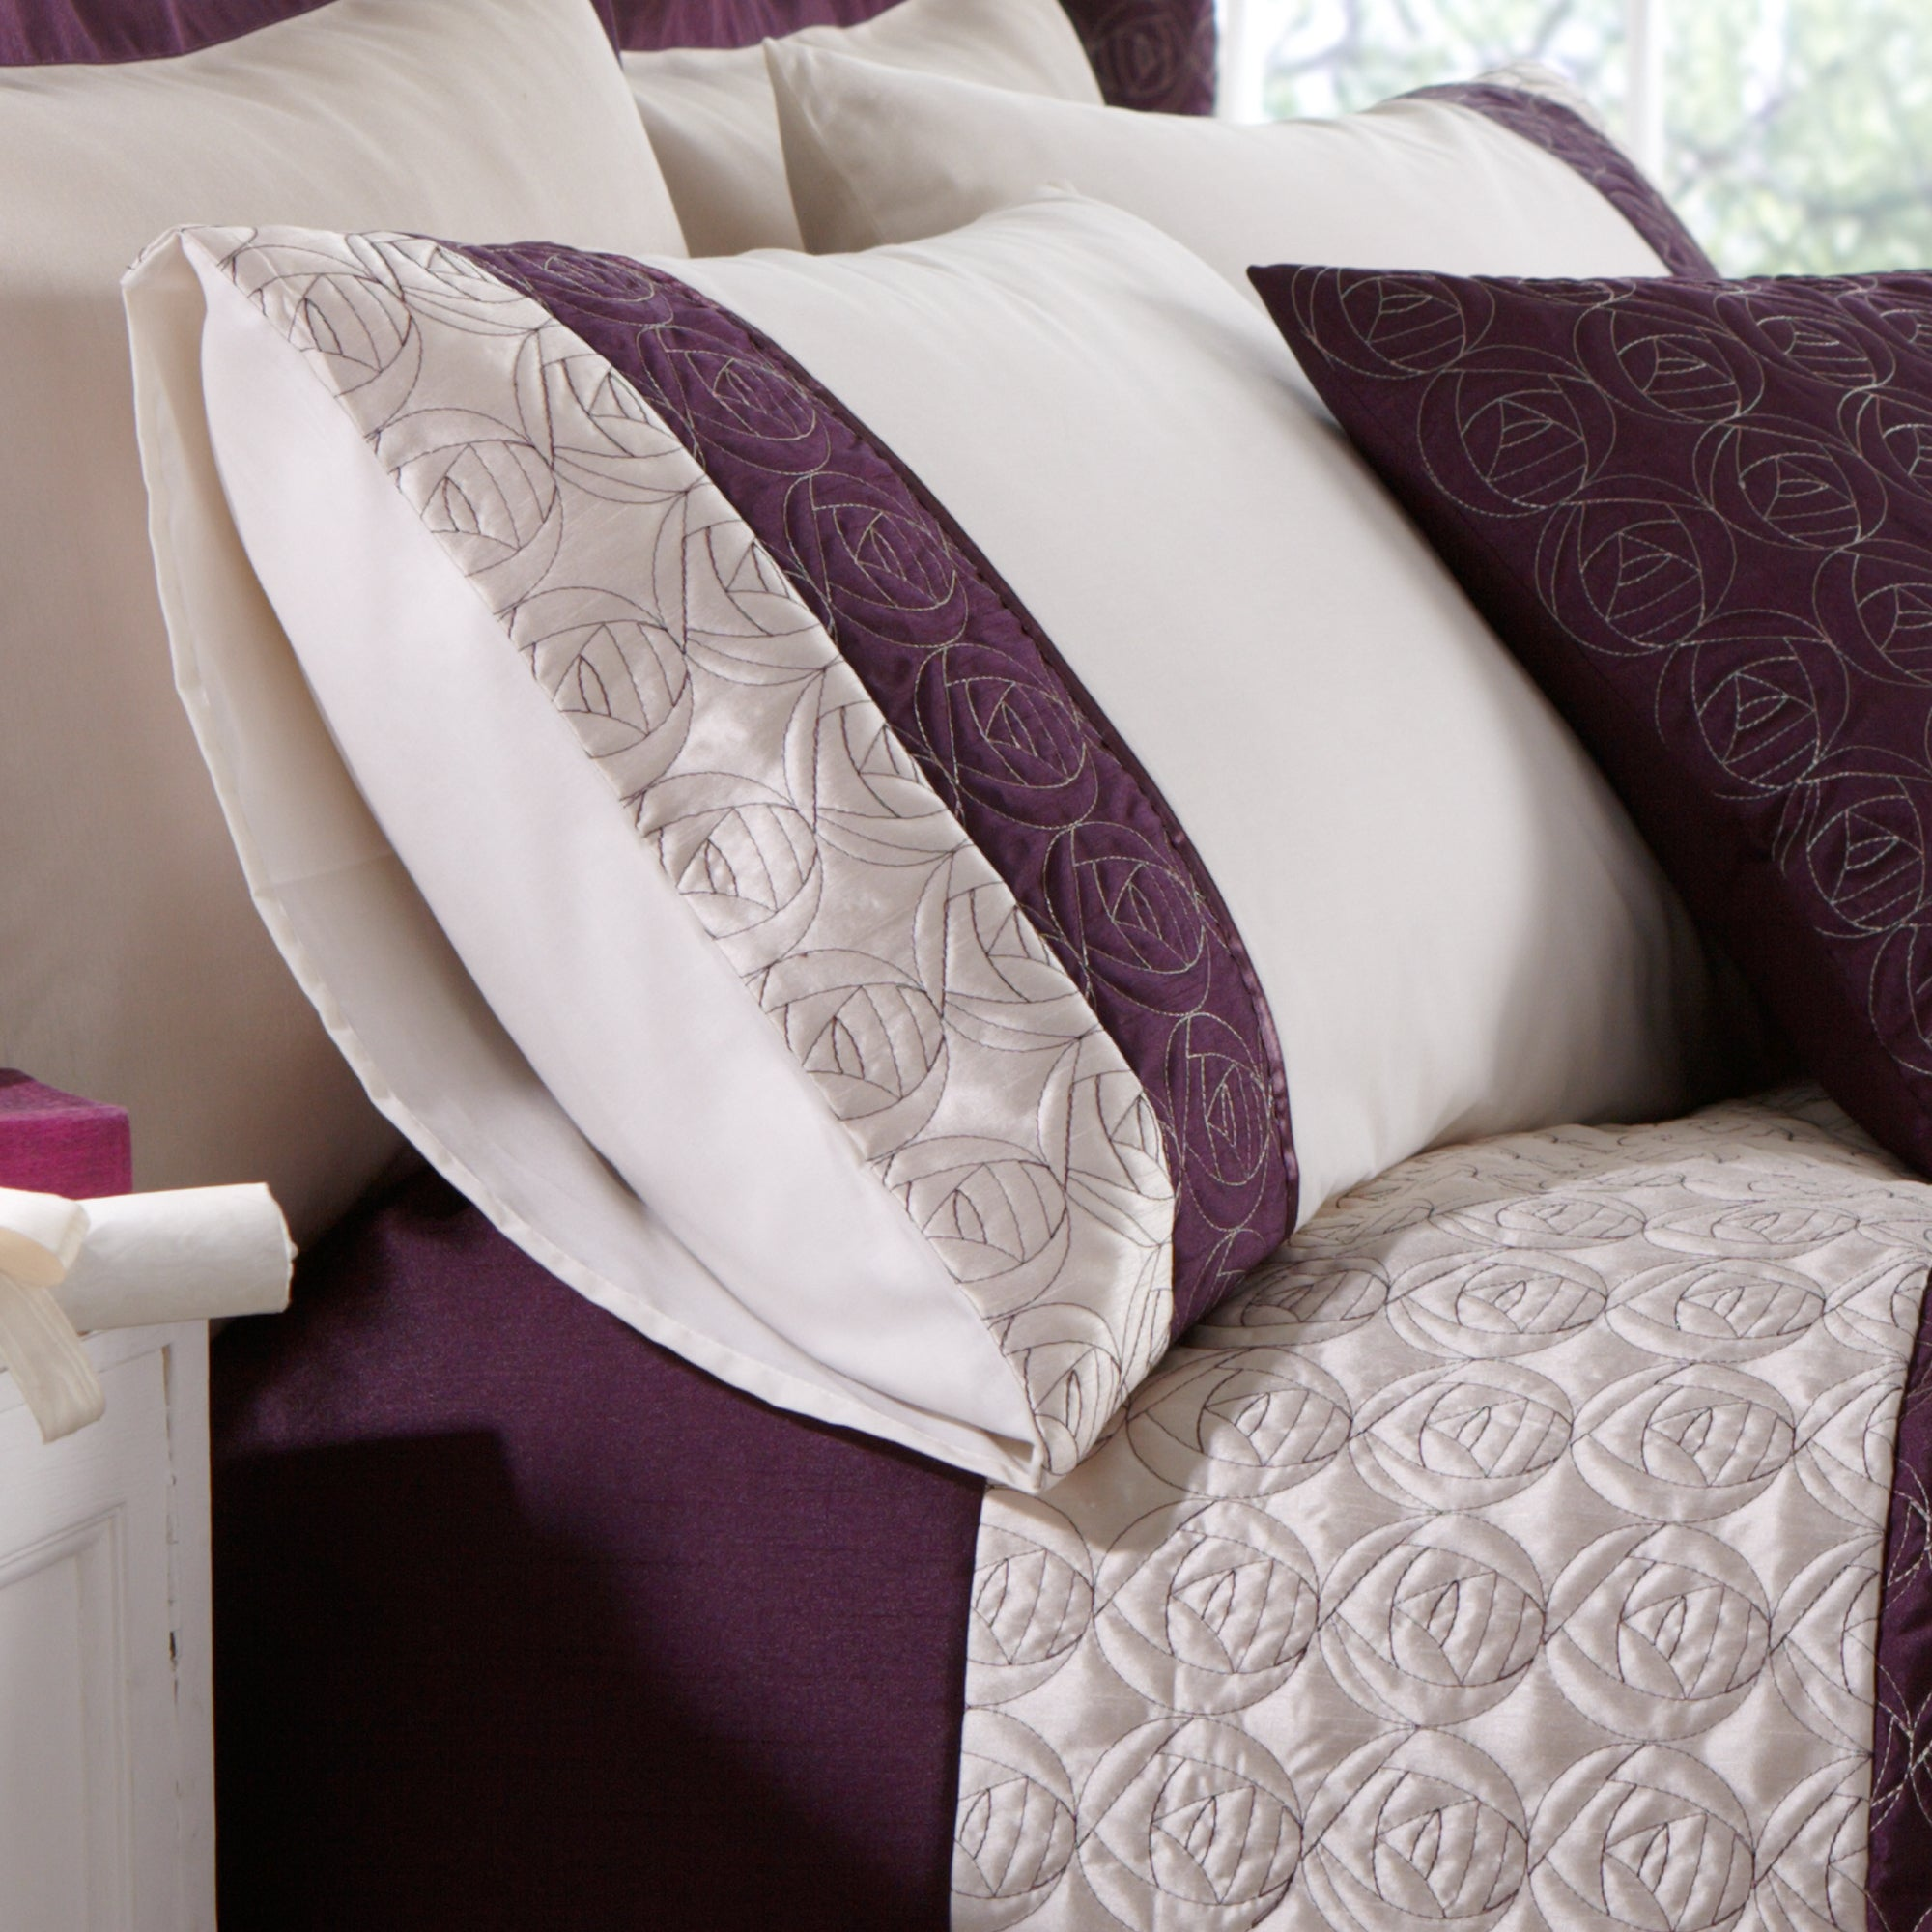 Plum Nouveau Rose Bedlinen Collection